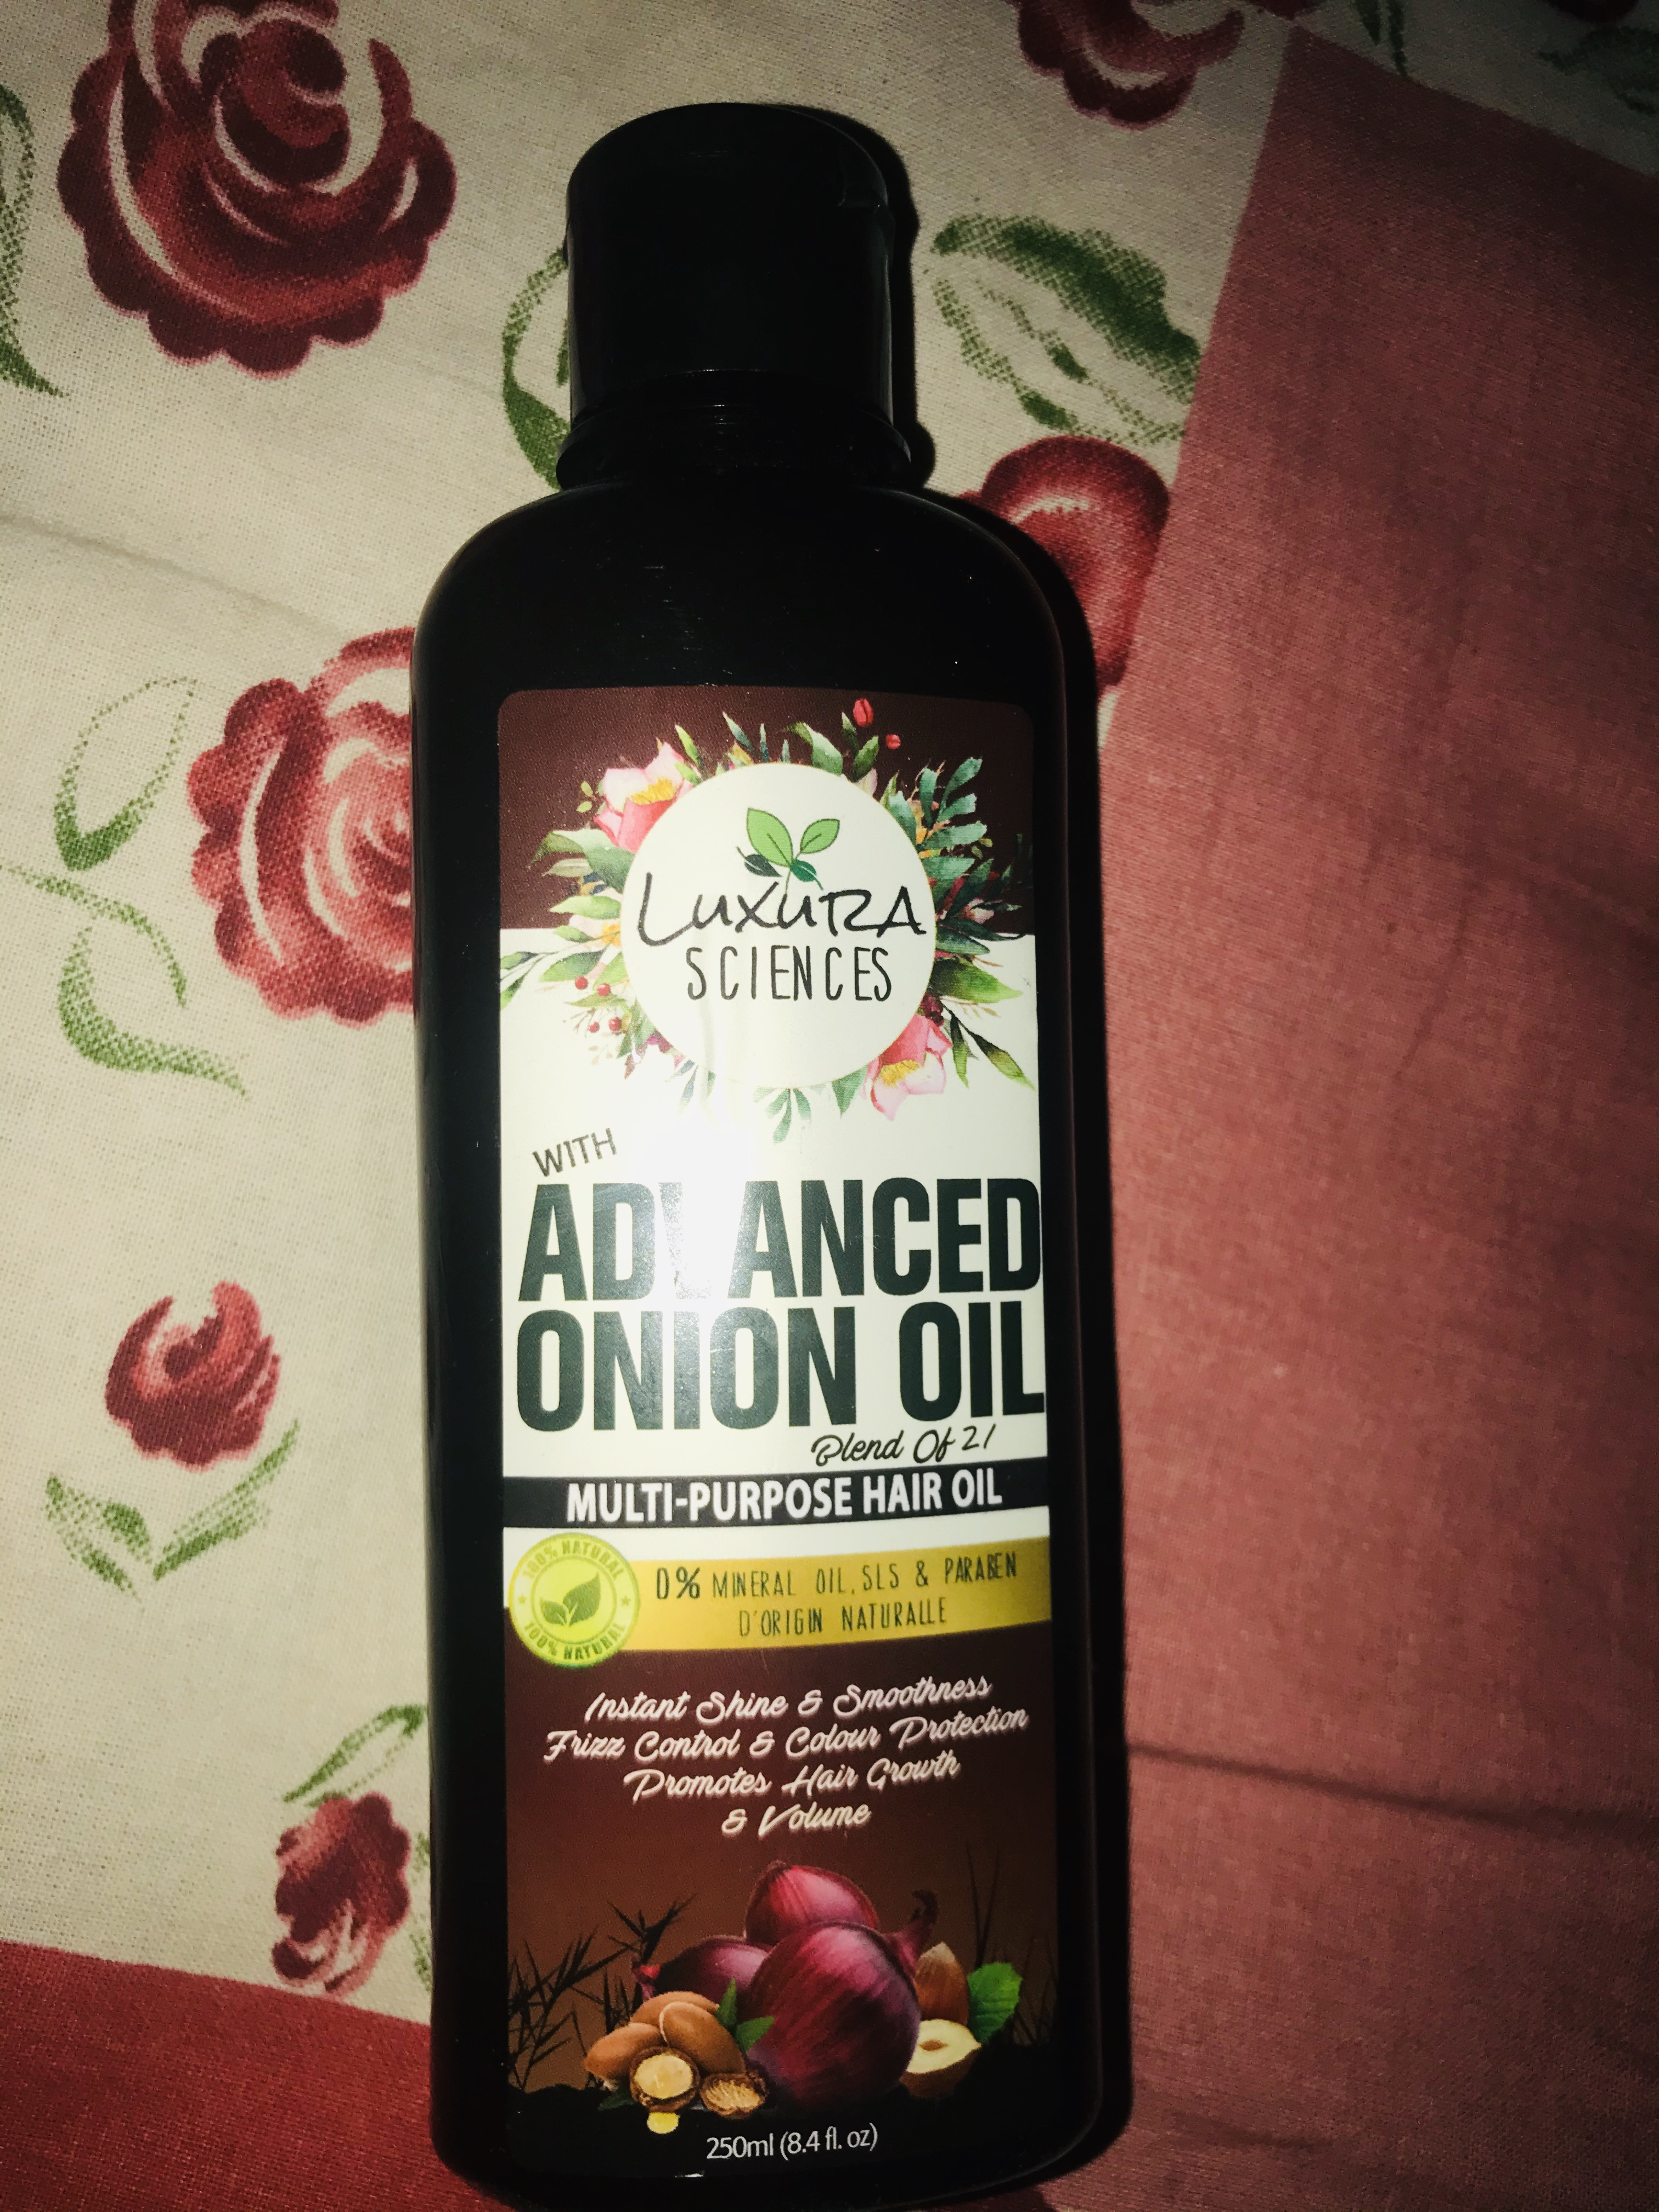 Luxura Sciences Advanced Onion Oil 250 ml-Superb product really effective, Must buy-By azad.sherni